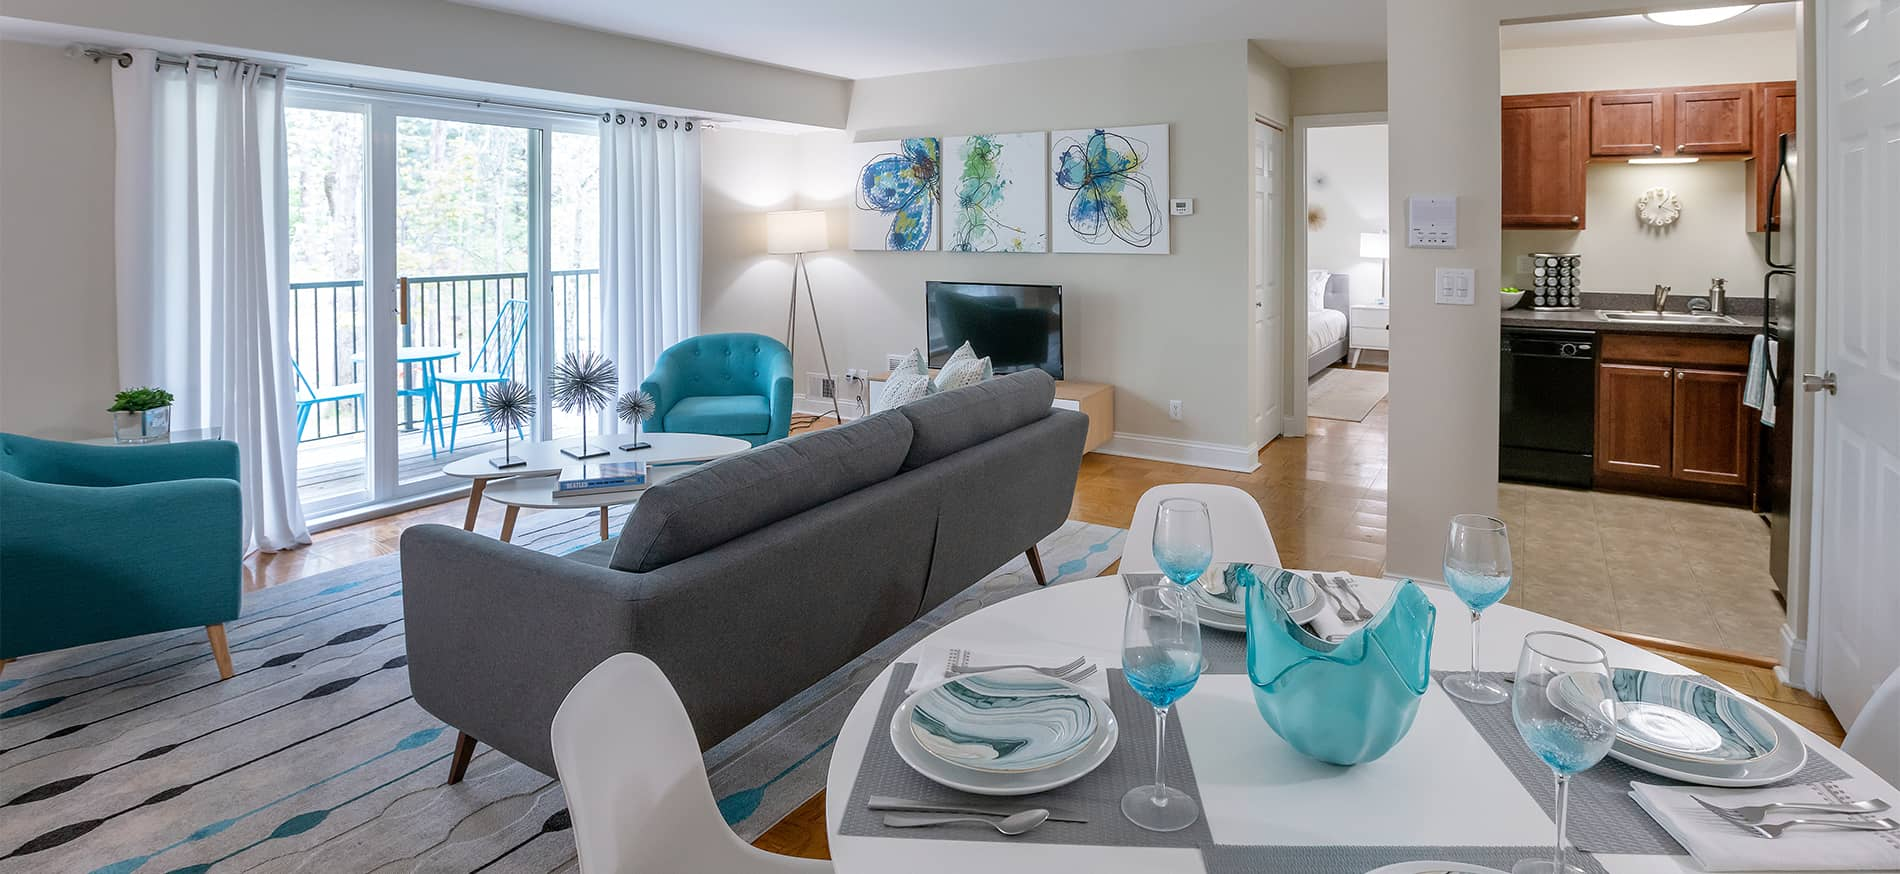 Apartments and Pricing for The Commons at Windsor Gardens